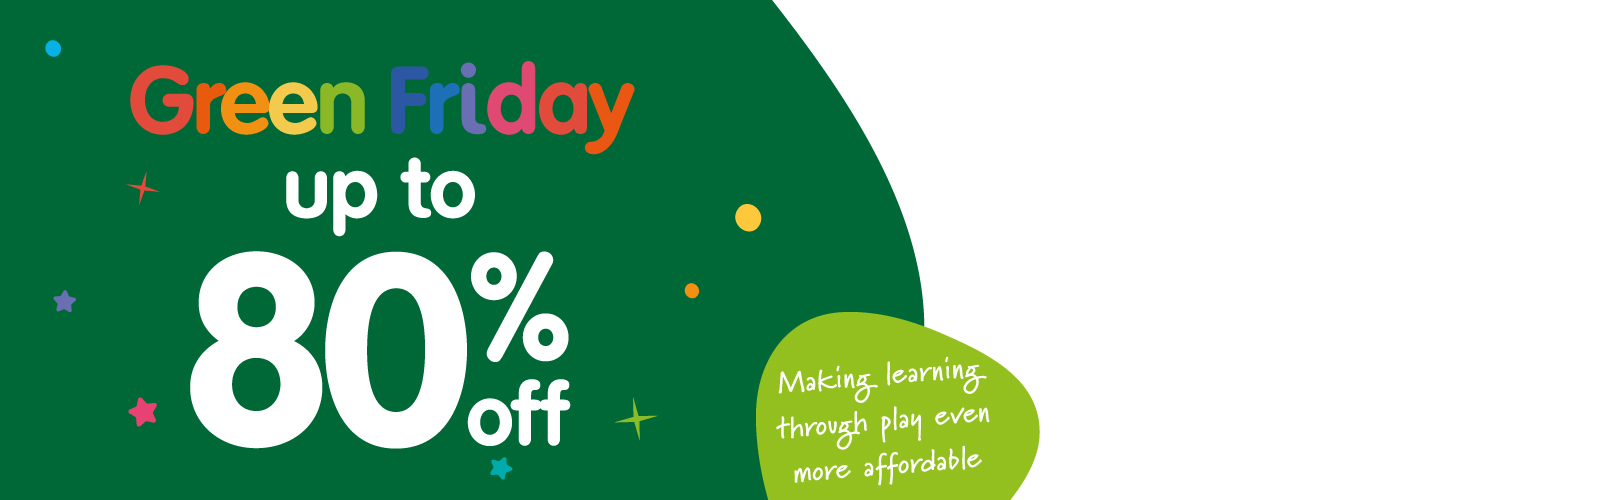 Early Learning Centre Green Friday Sale - Dubaisavers